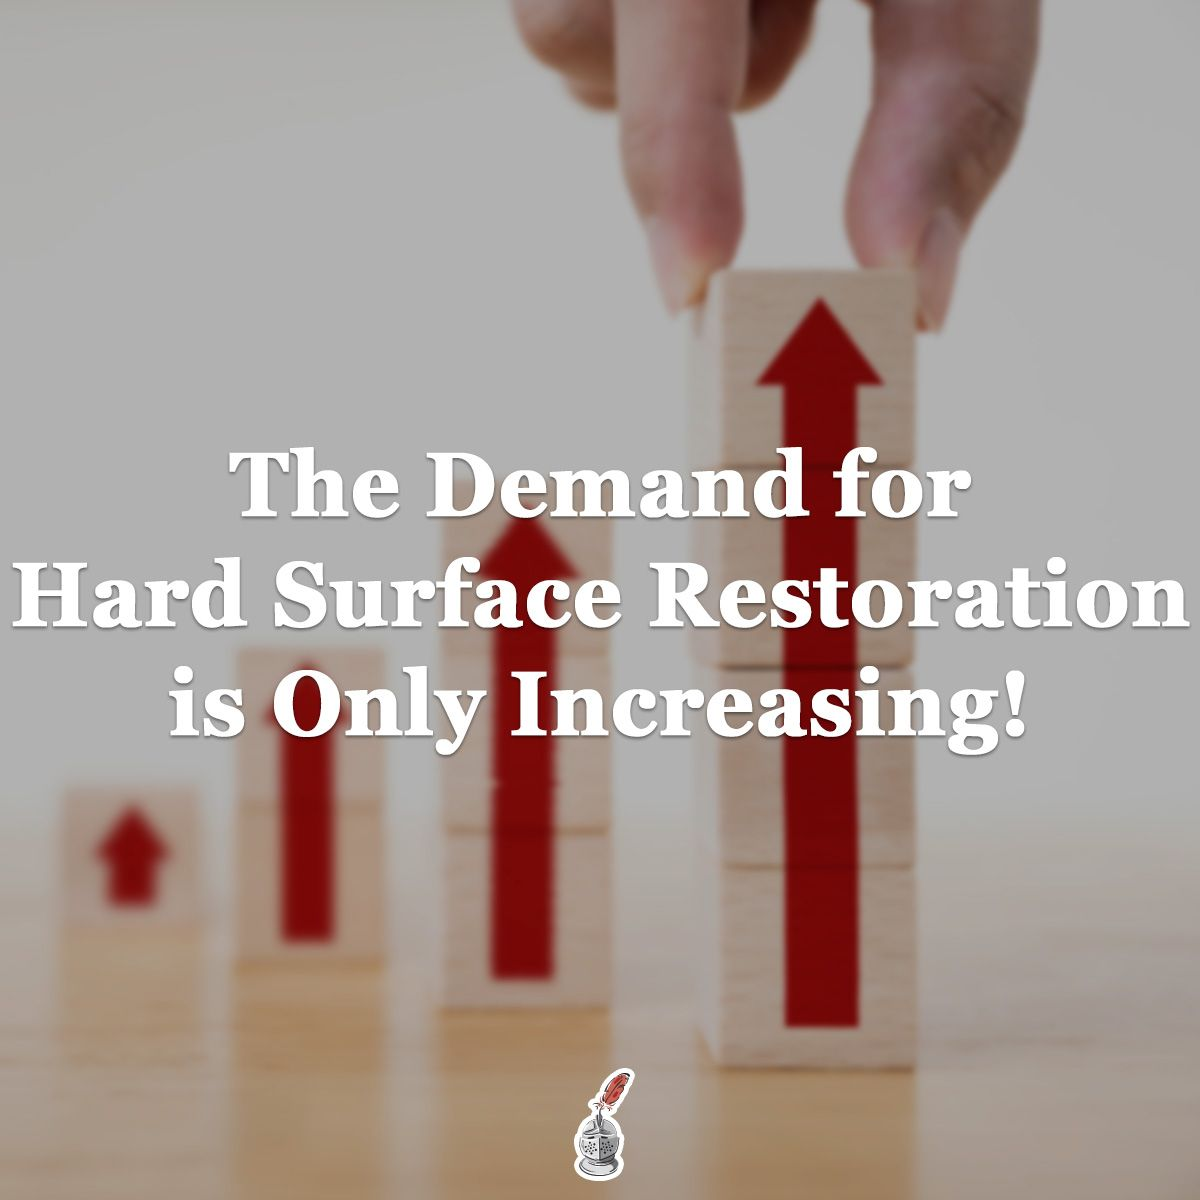 The Demand for Hard Surface Restoration is Only Increasing!